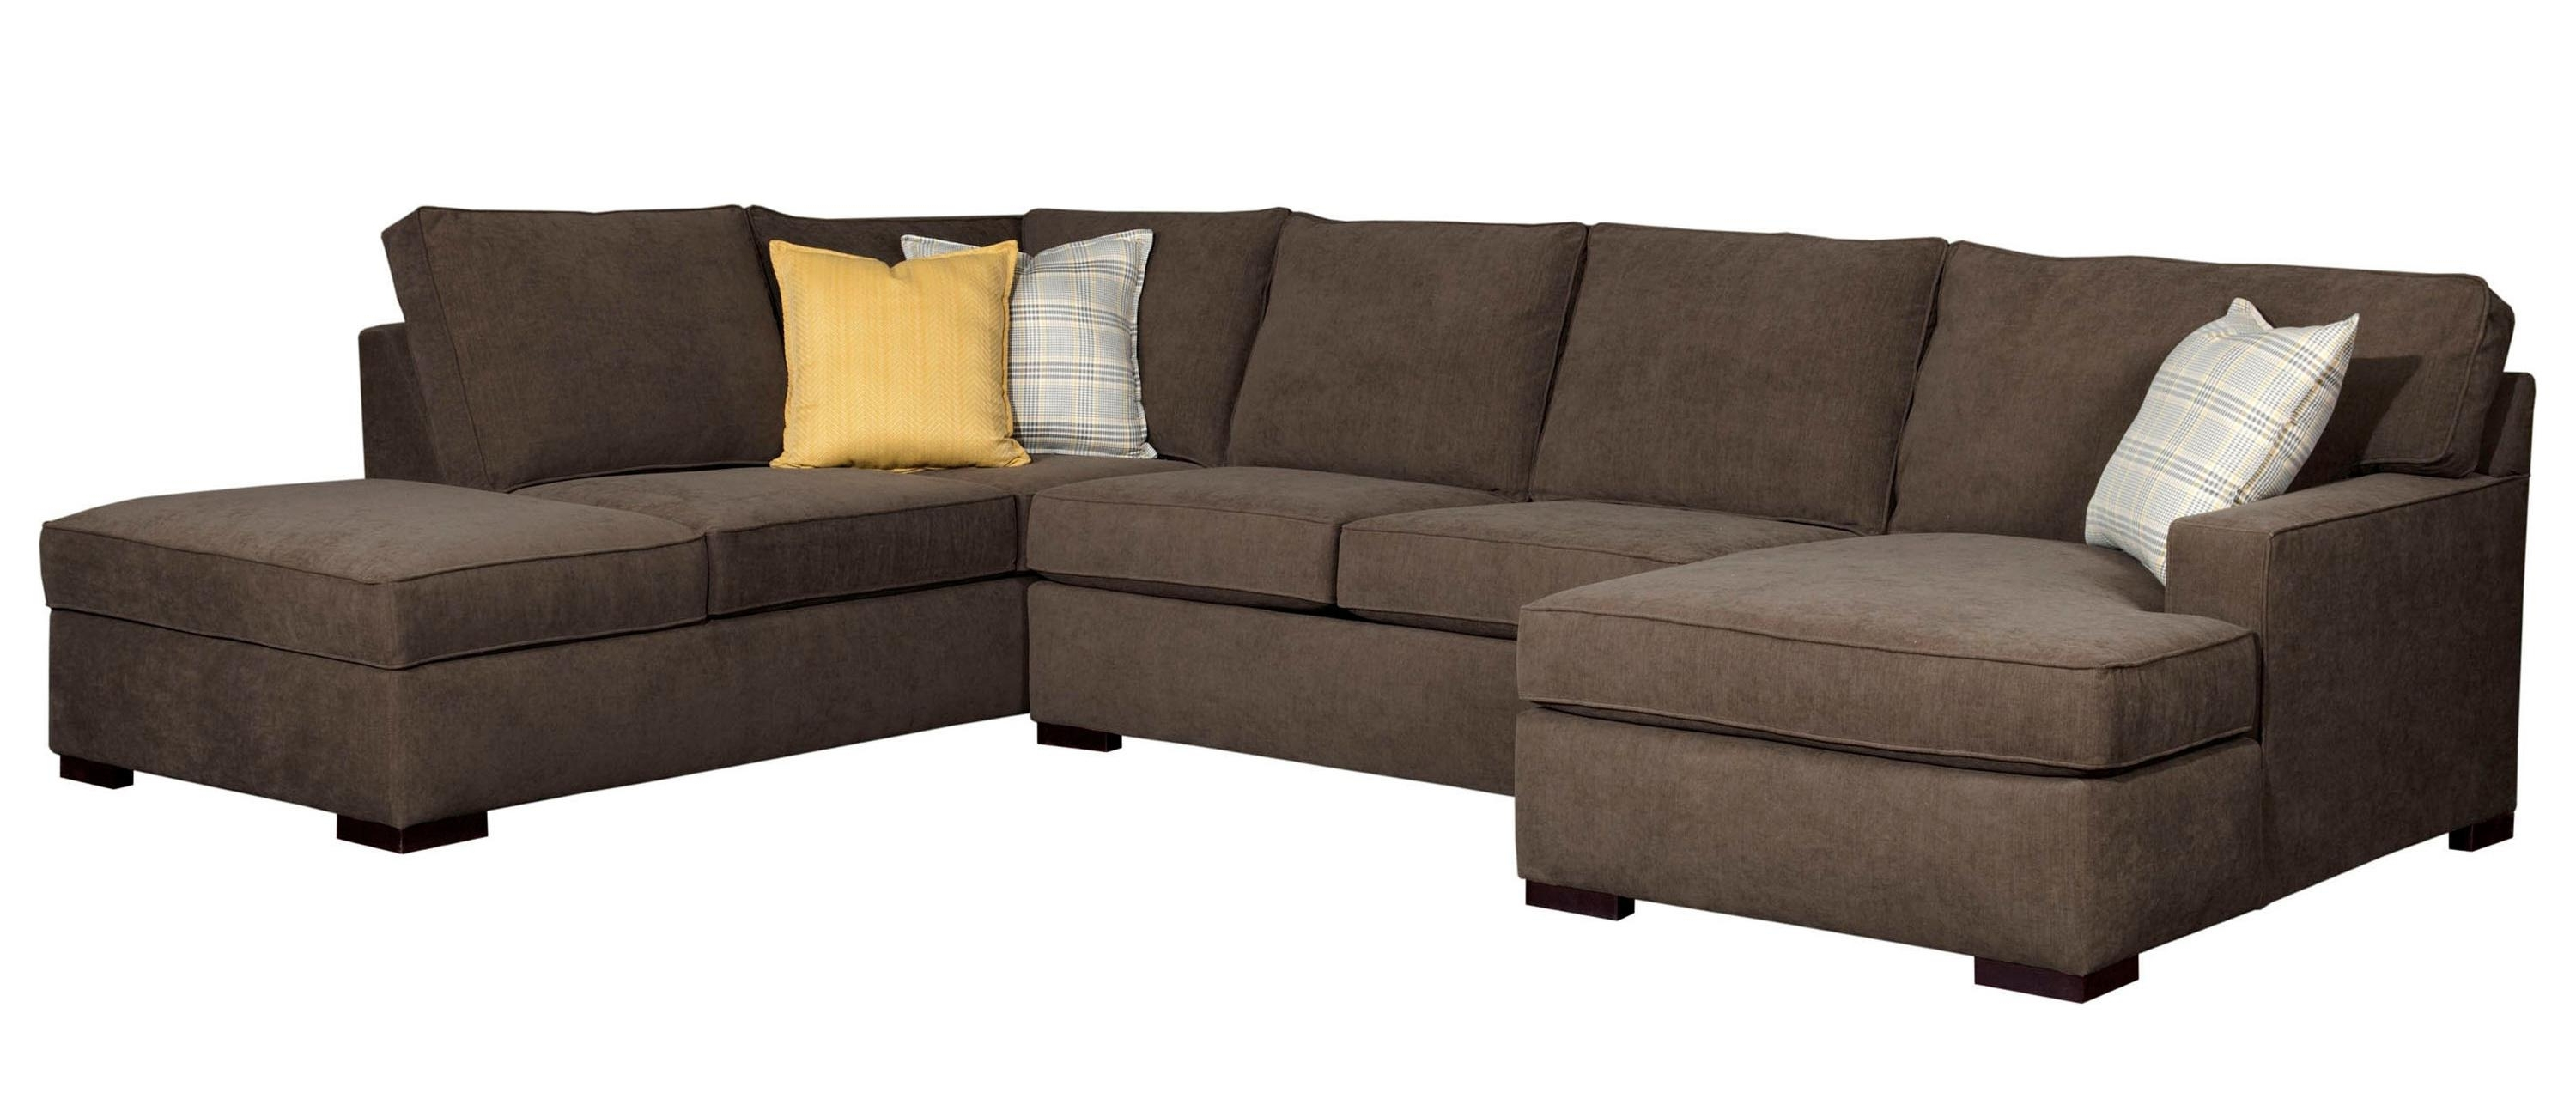 Evansville In Sectional Sofas Pertaining To Well Known Broyhill Furniture Raphael Contemporary Sectional Sofa With Laf (View 4 of 15)